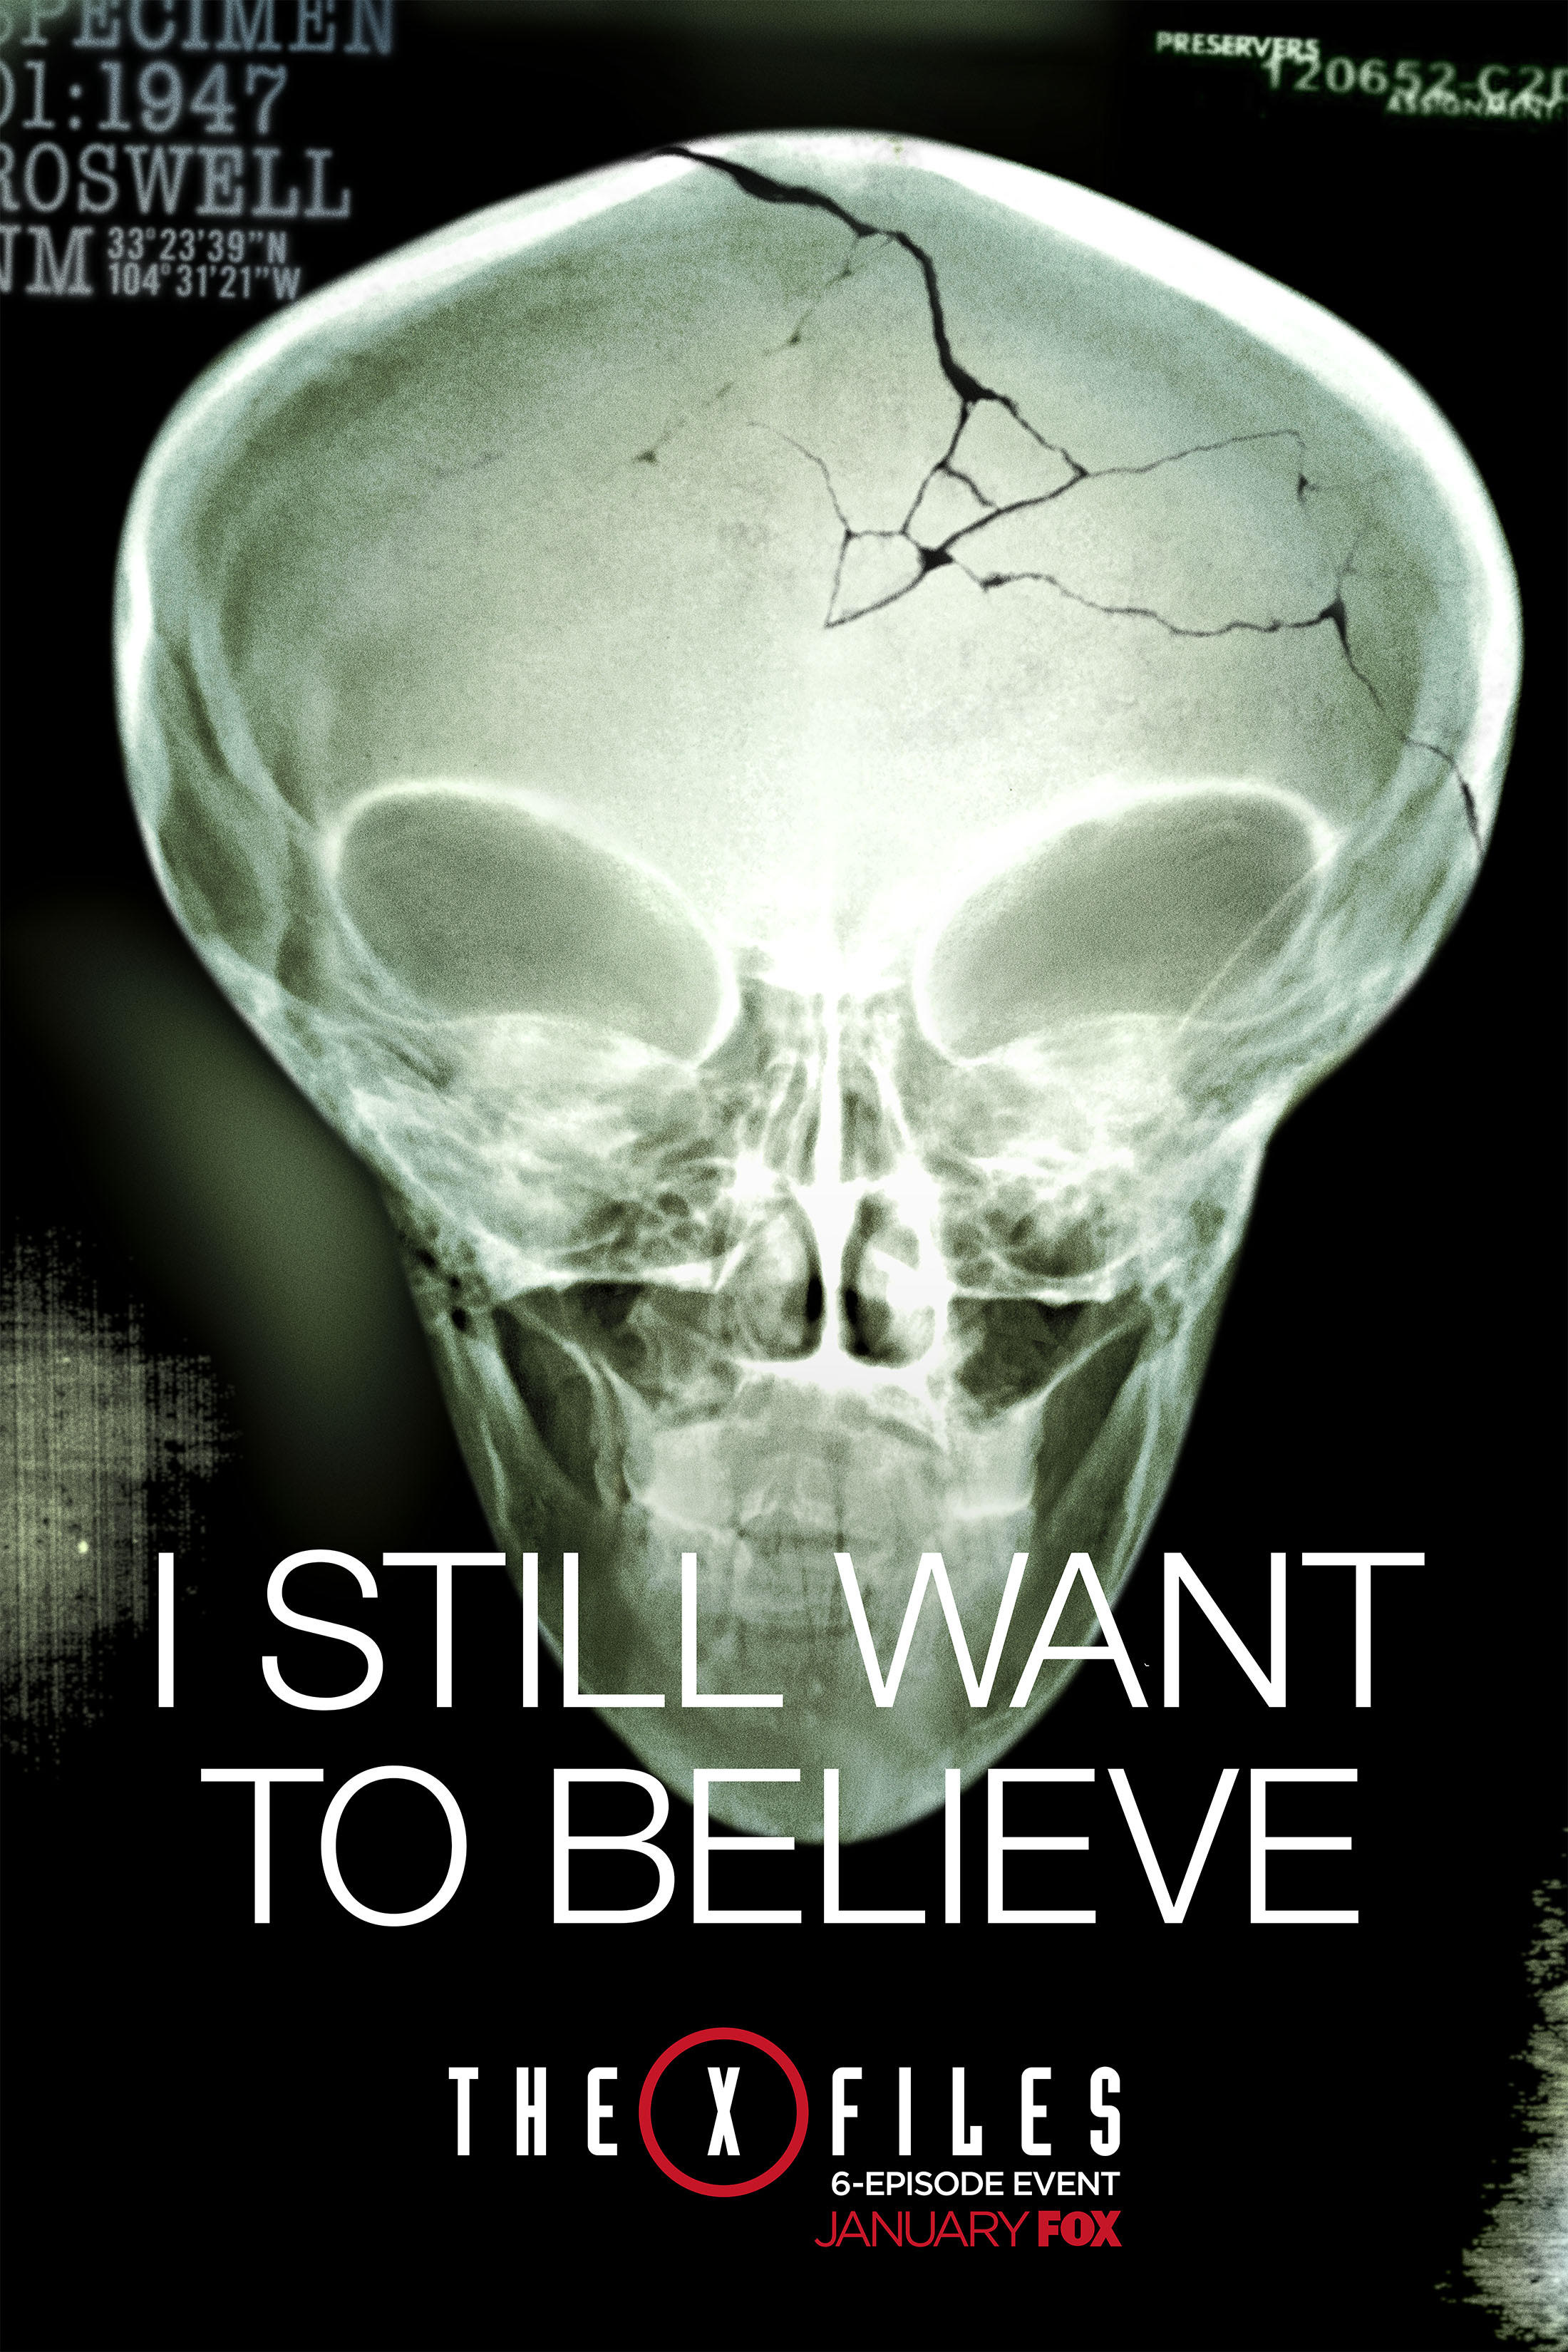 The X-Files (miniseries) official poster - alien skull